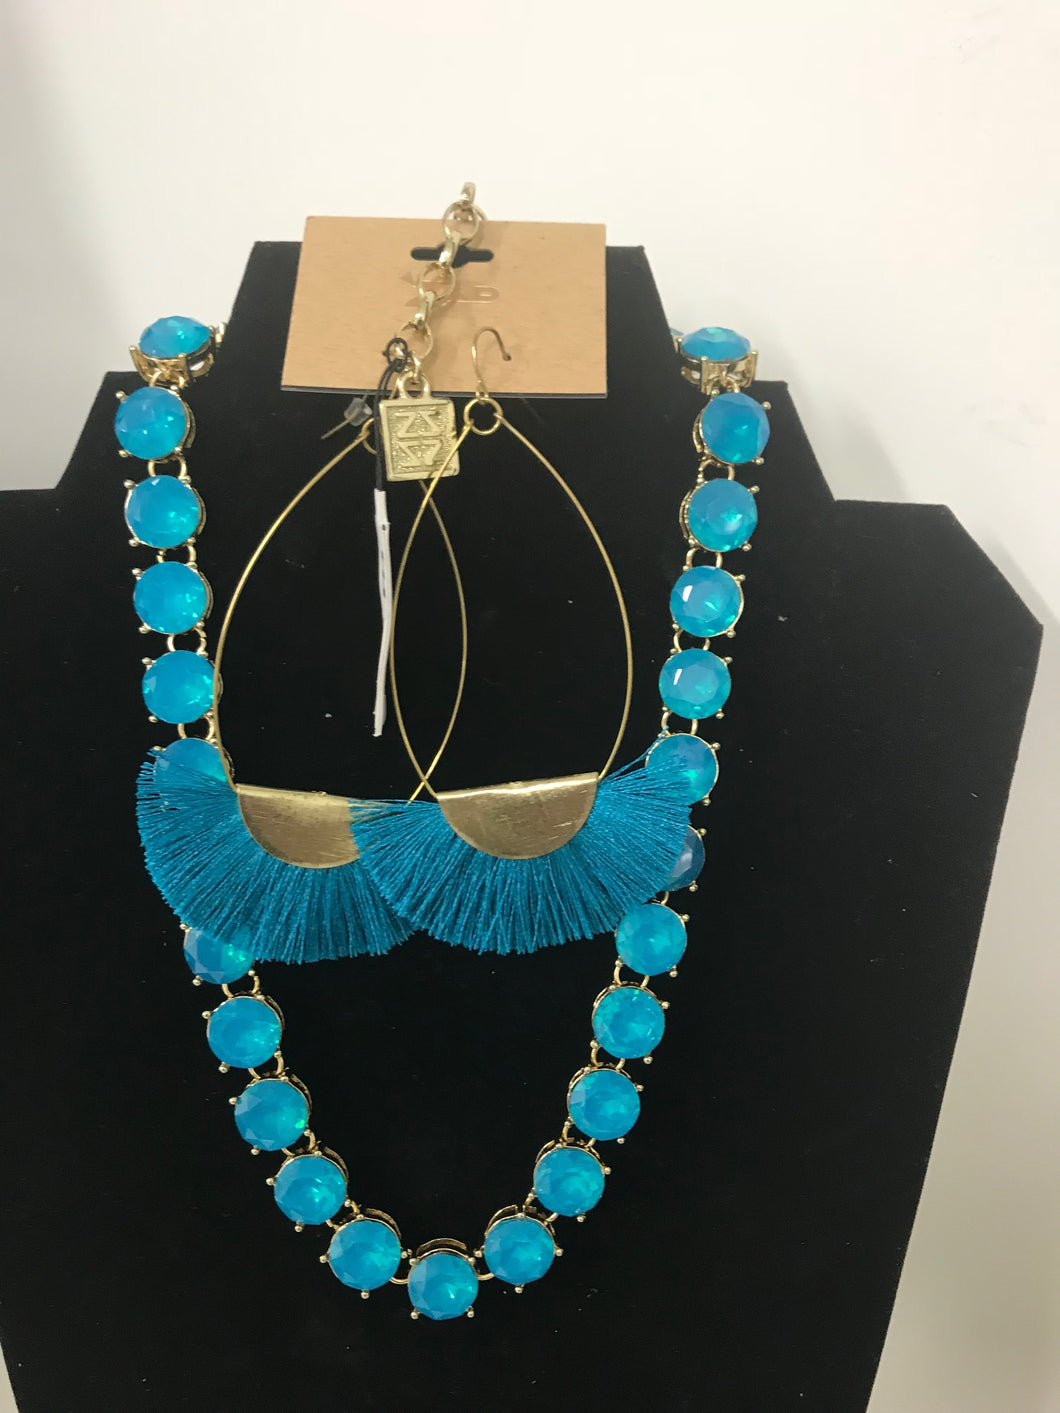 Venus Necklace and Earrings